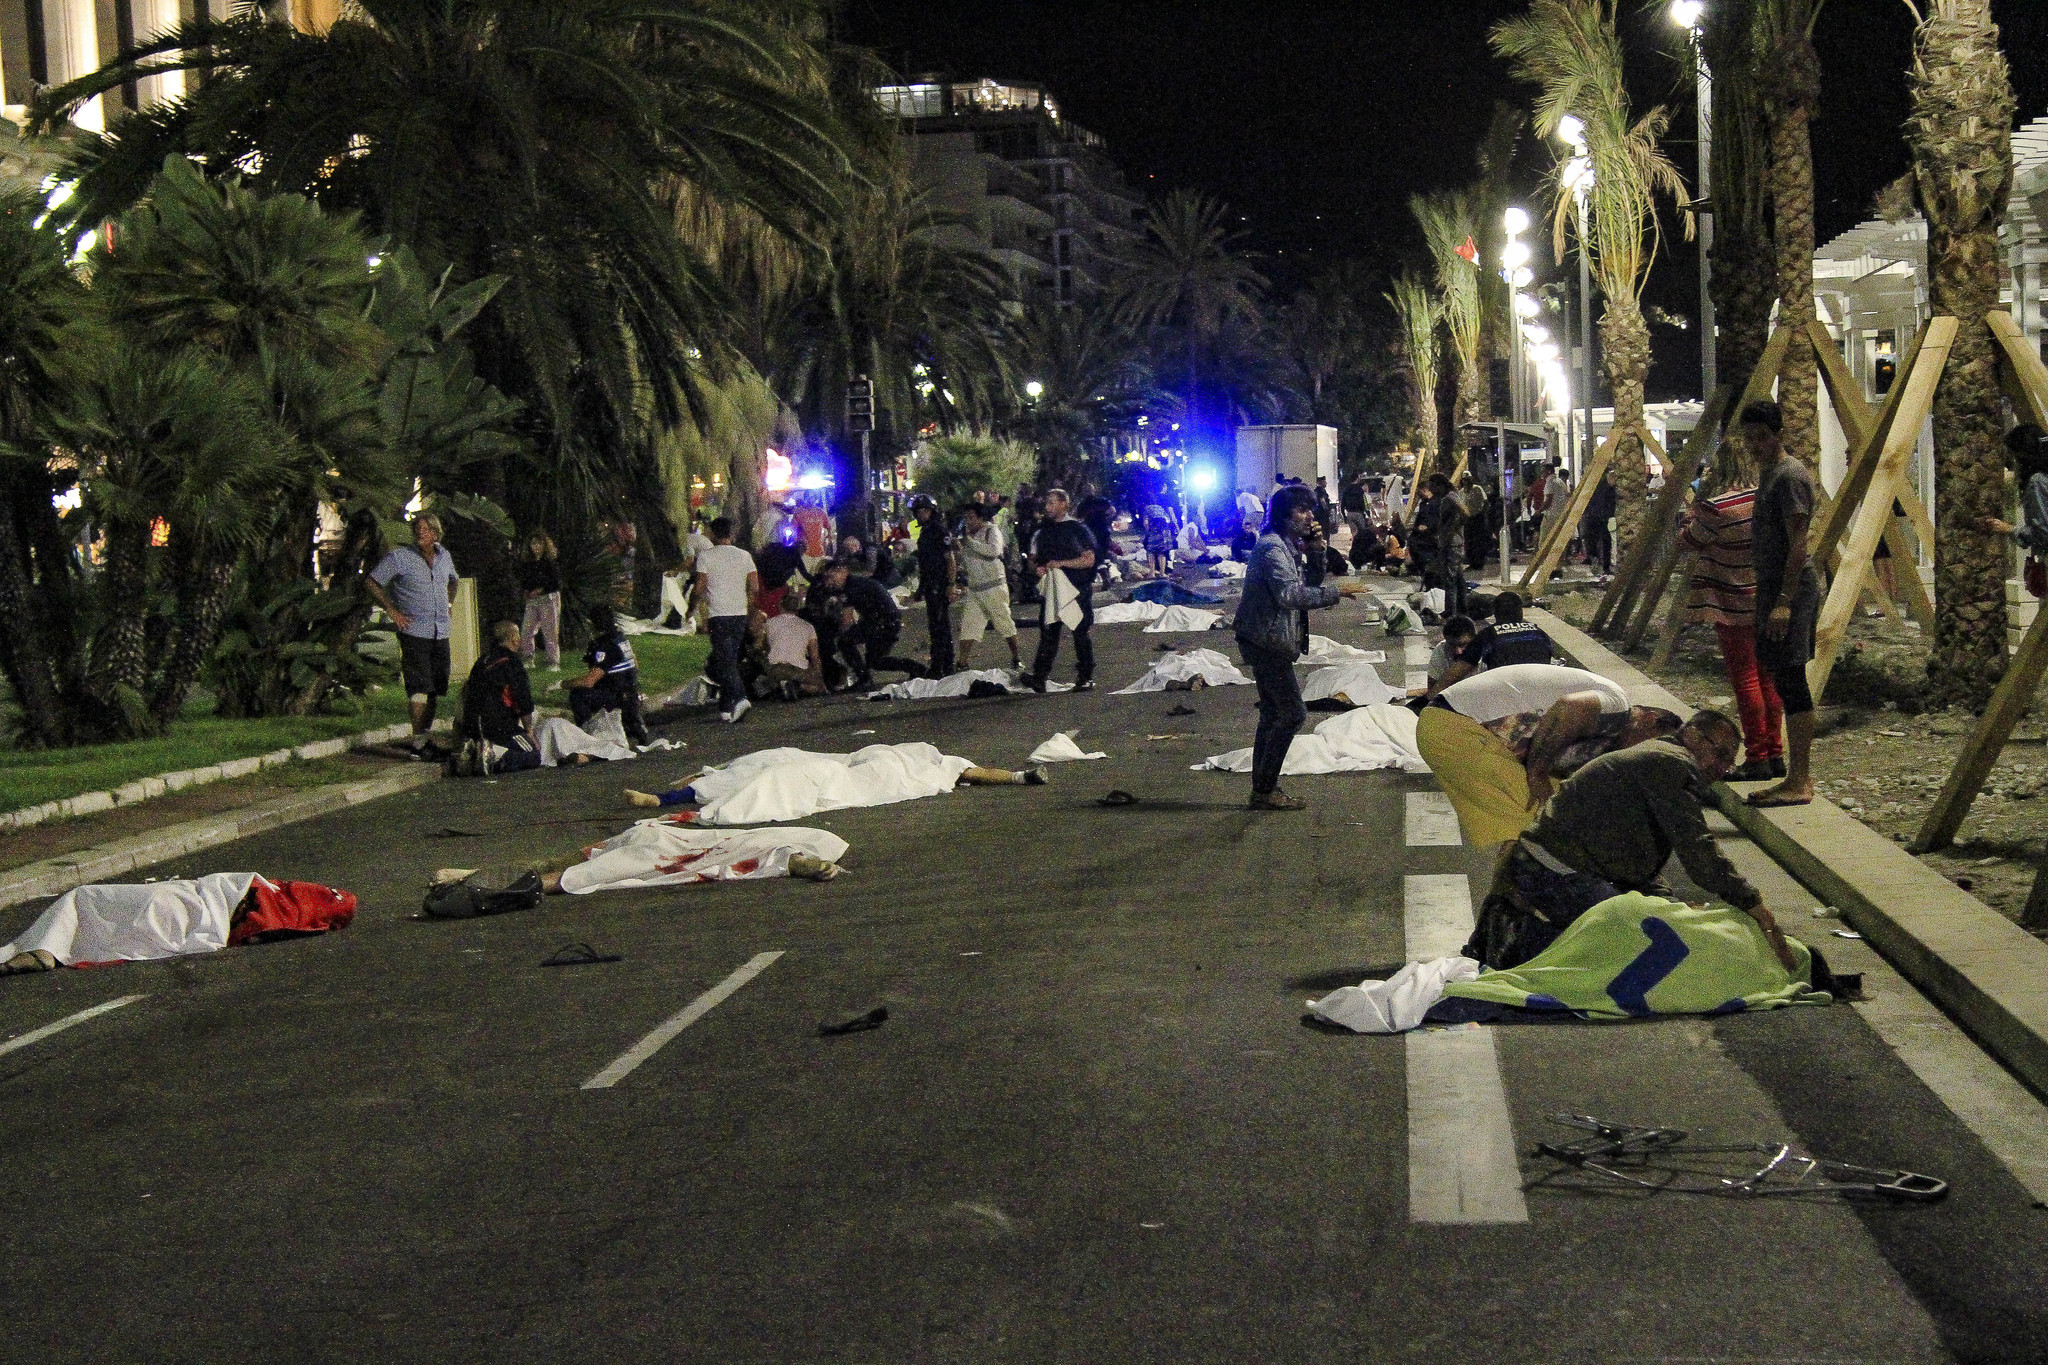 Bodies lie on the street after a truck plowed through a crowded seaside promenade in Nice, France.